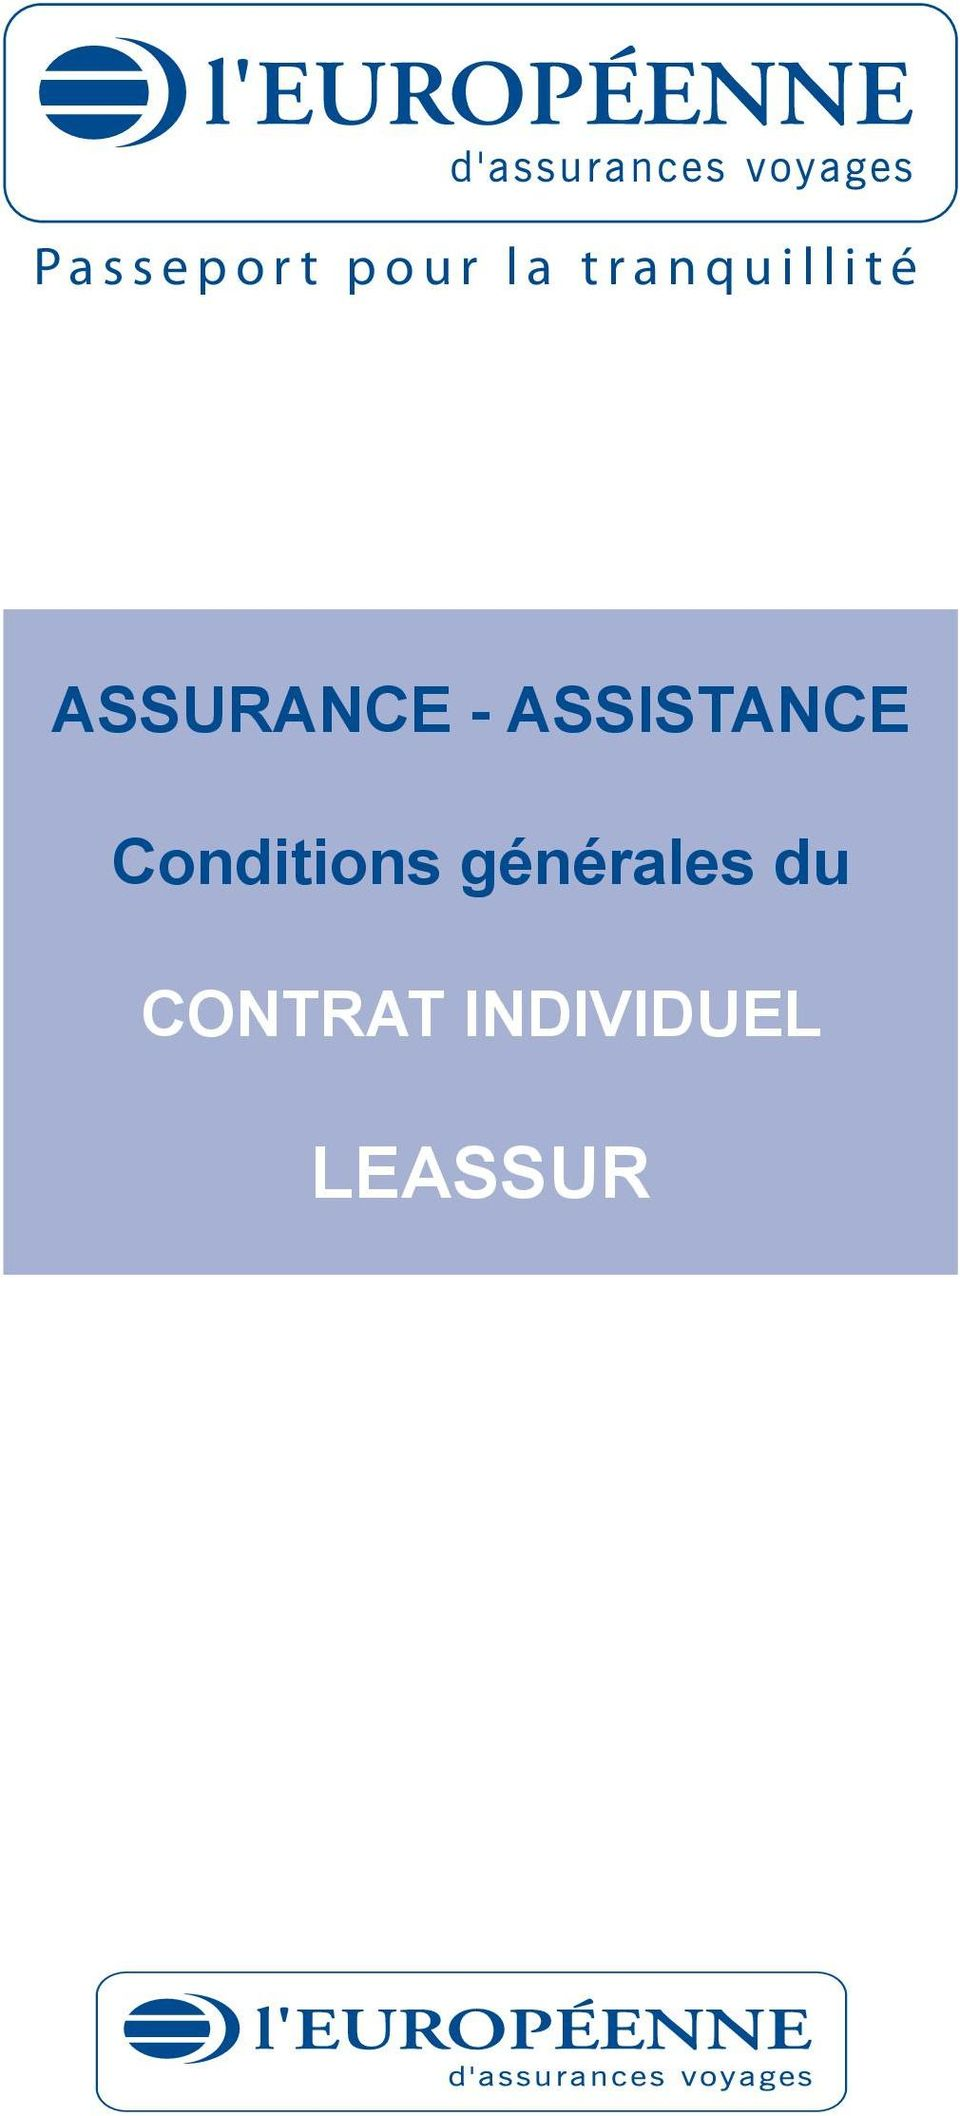 - ASSISTANCE Conditions